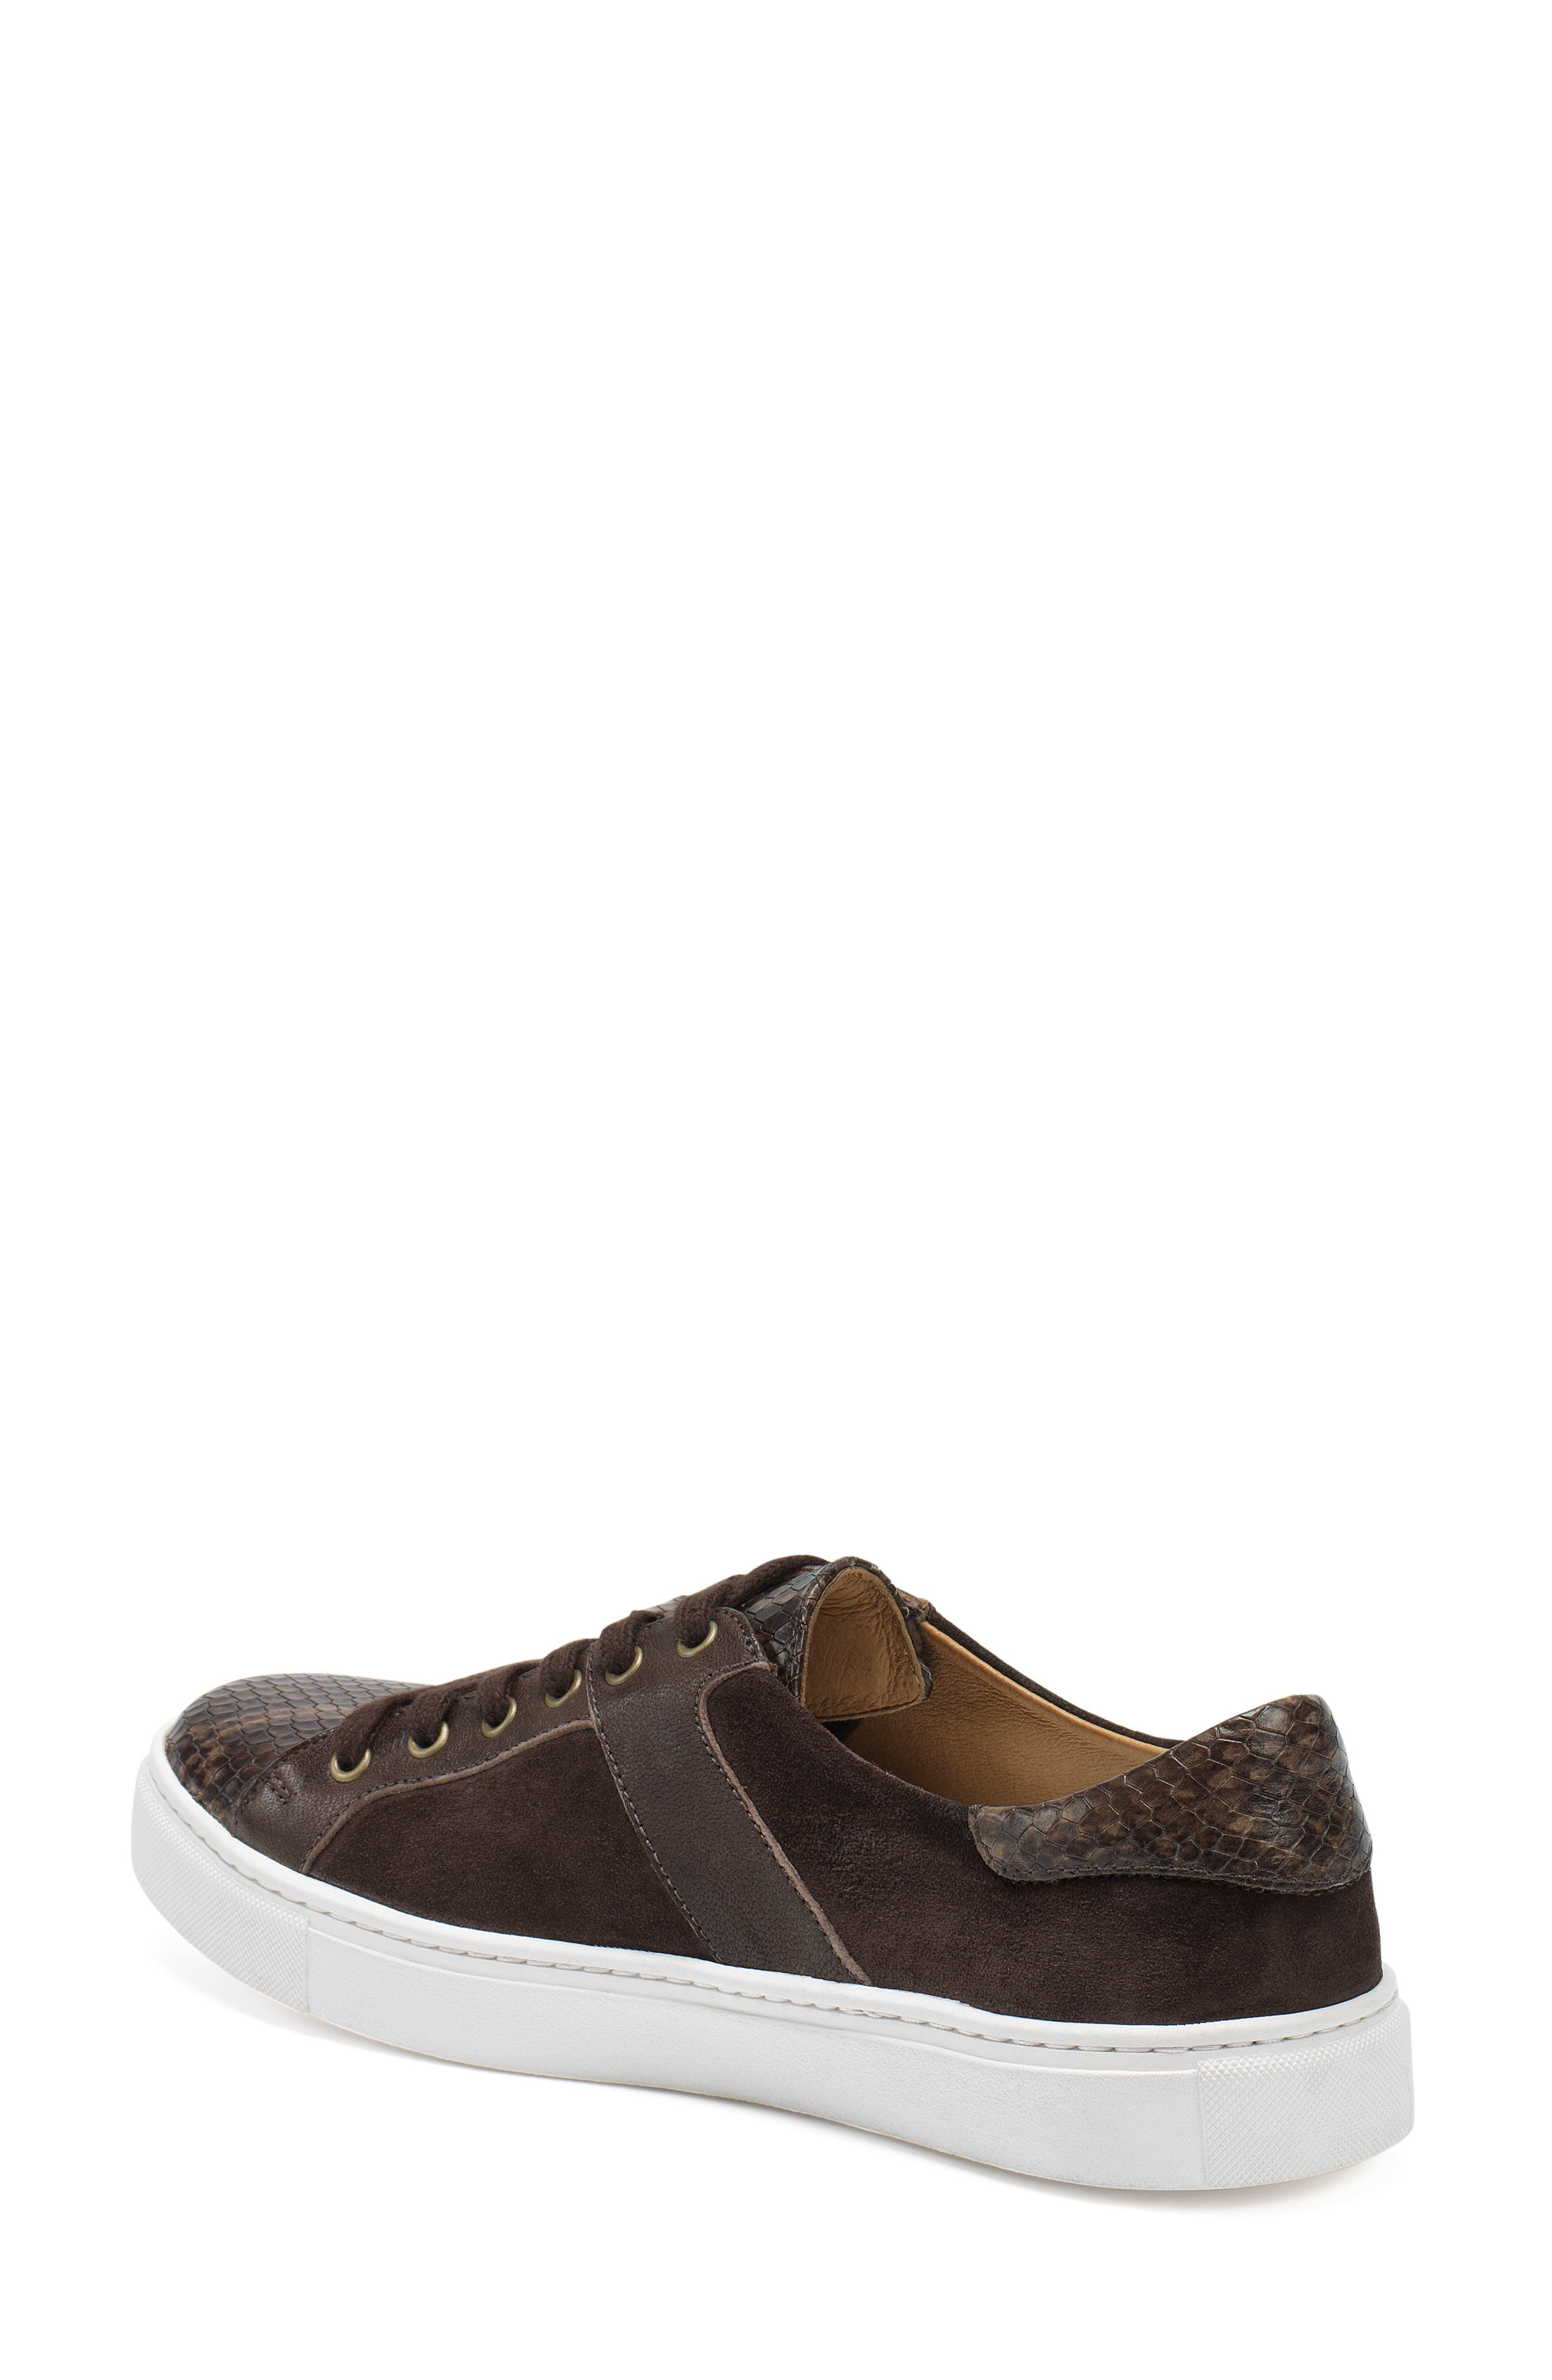 TRASK, Lindsey Sneaker, Alternate thumbnail 2, color, BROWN PRINT LEATHER